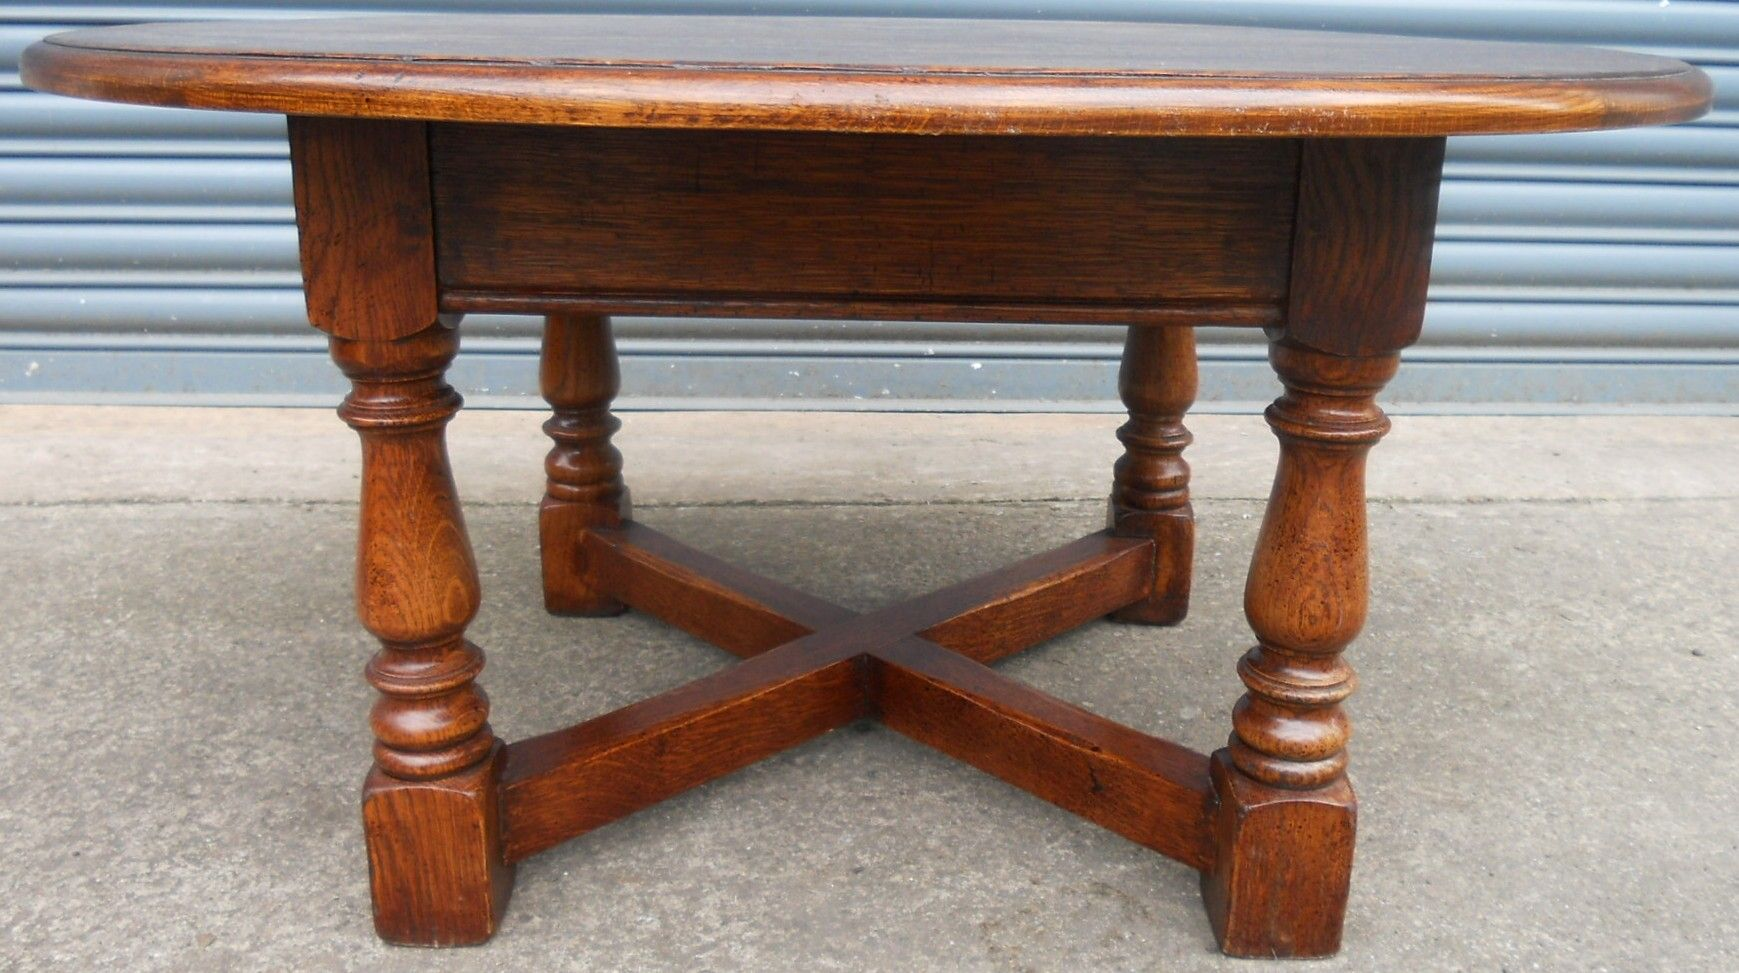 SOLD Round Oak Coffee Table